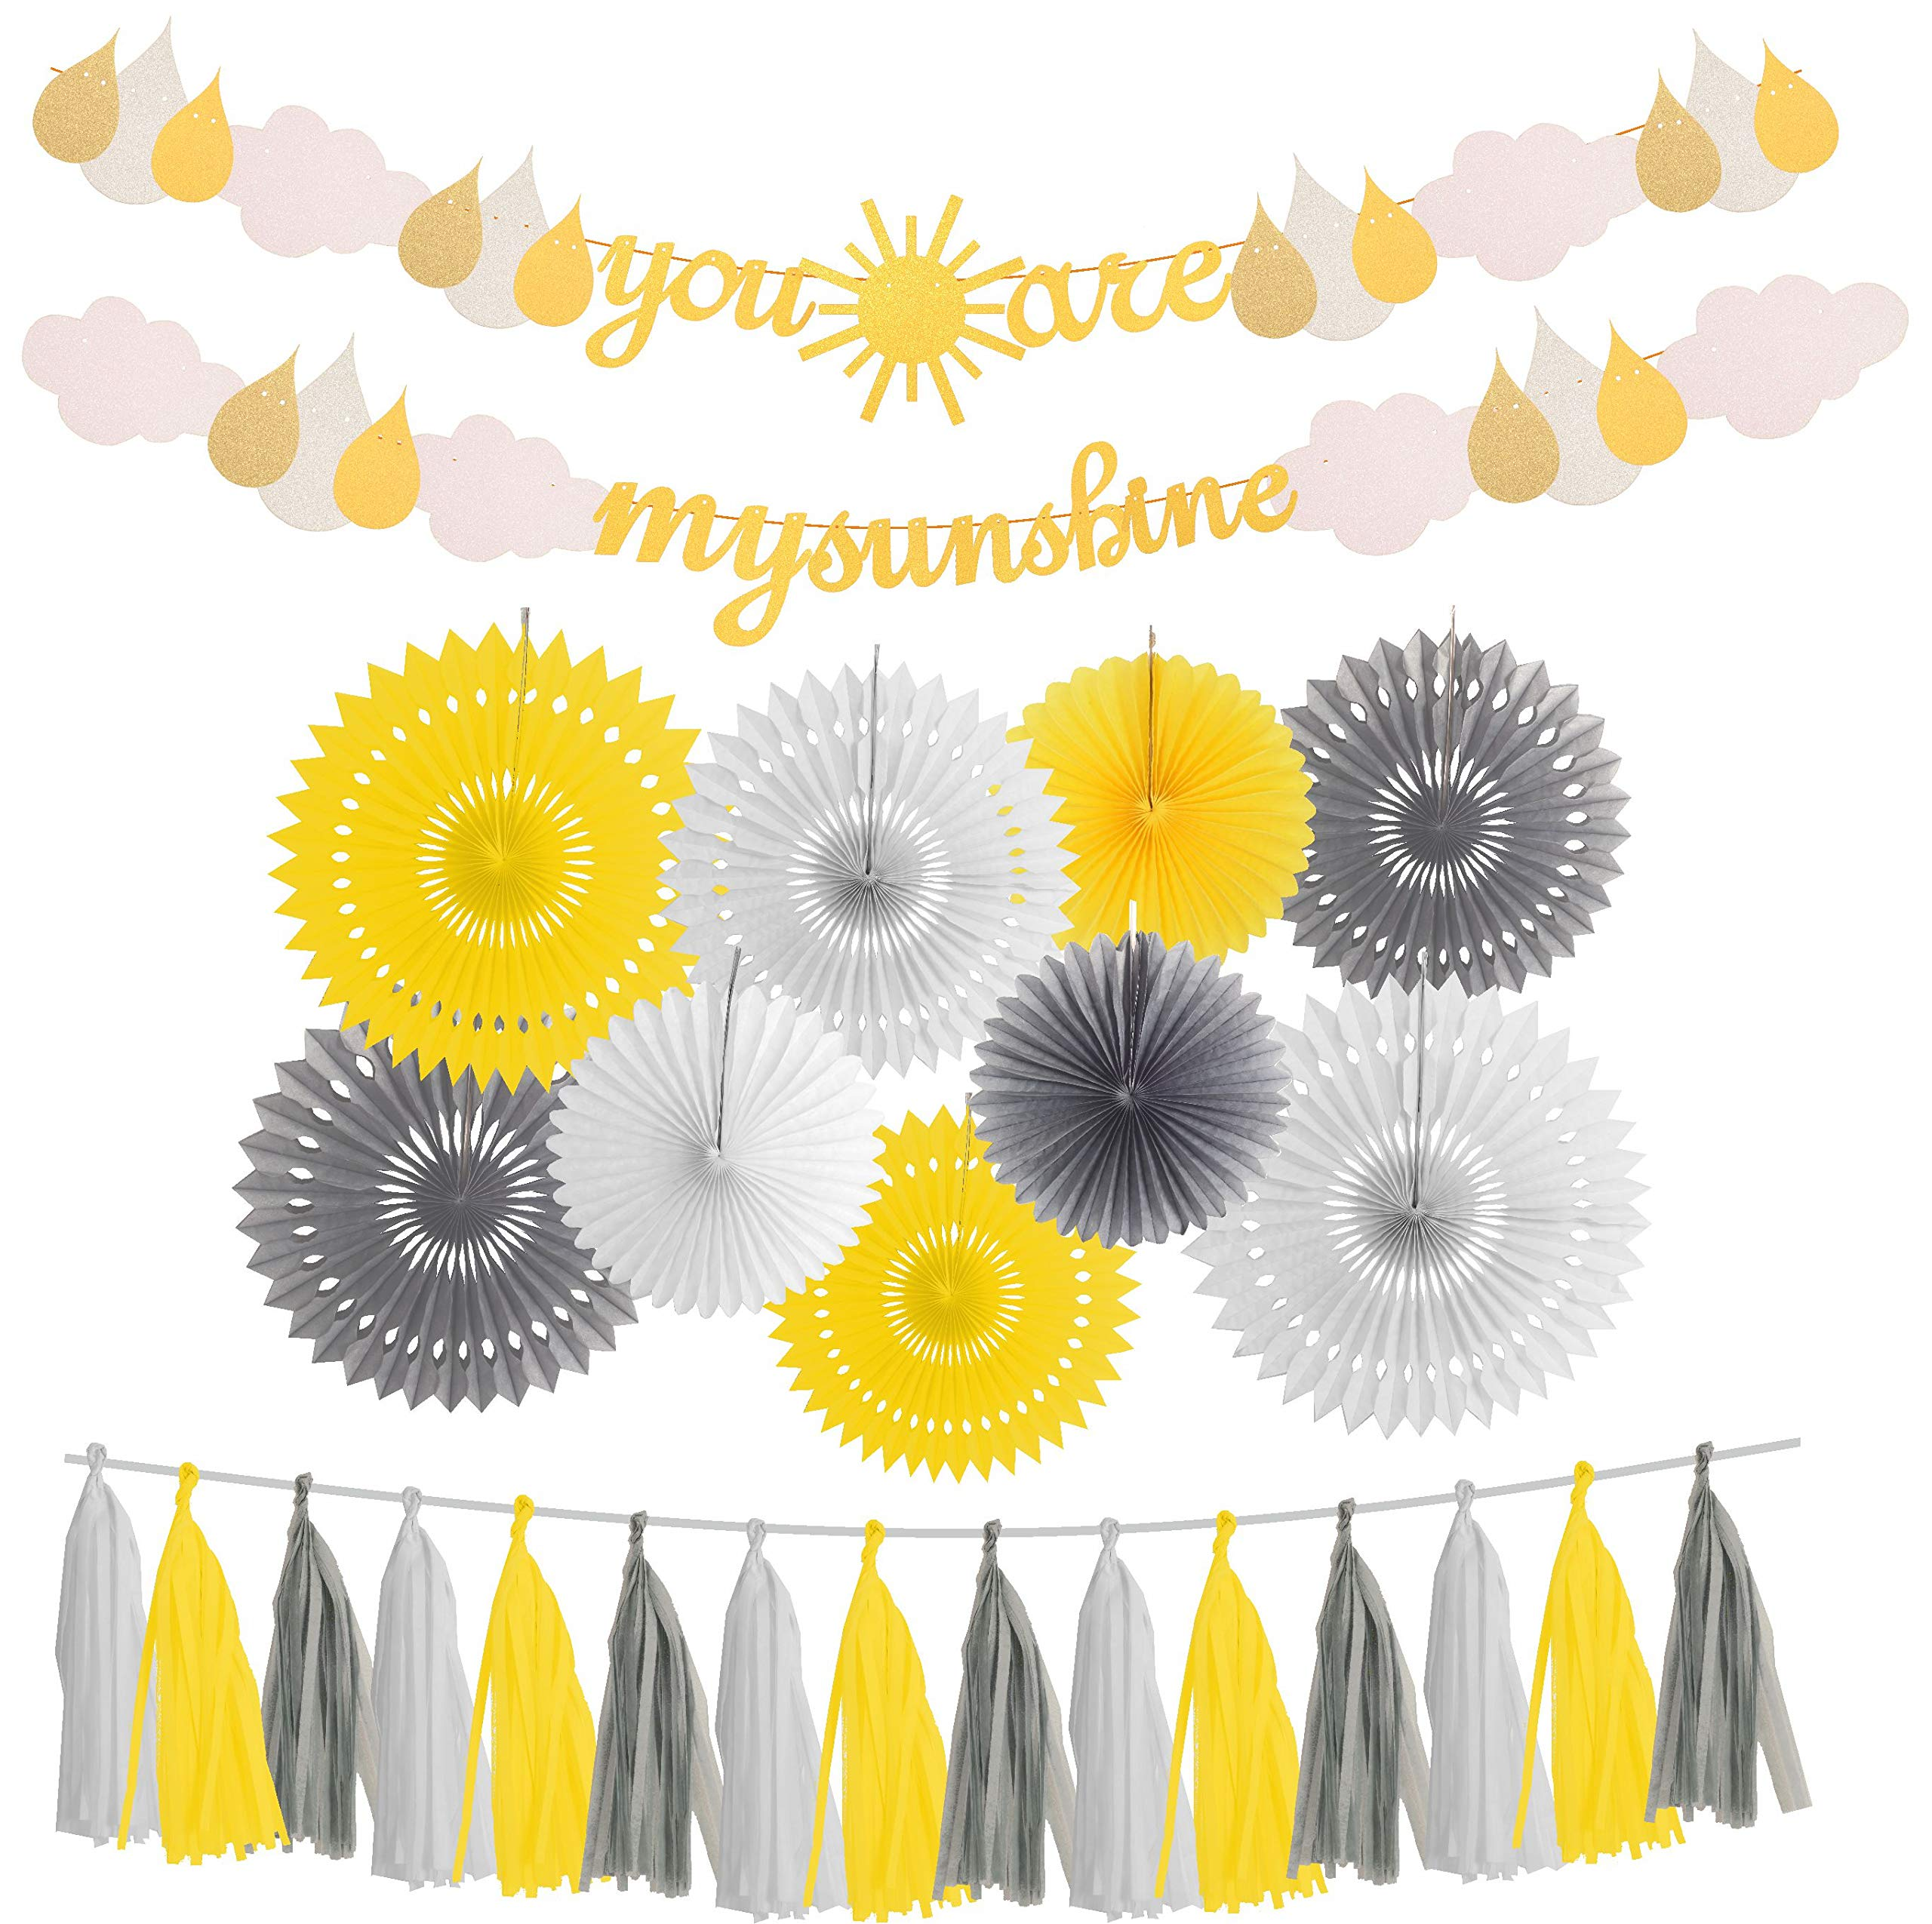 You are My Sunshine Party Supplies, You are my Sunshine Party Decorations, You Are My Sunshine Banners, Sunshine Party Decorations for Baby Shower Party, Gender Reversal Baby Shower, Wedding Party, Bi